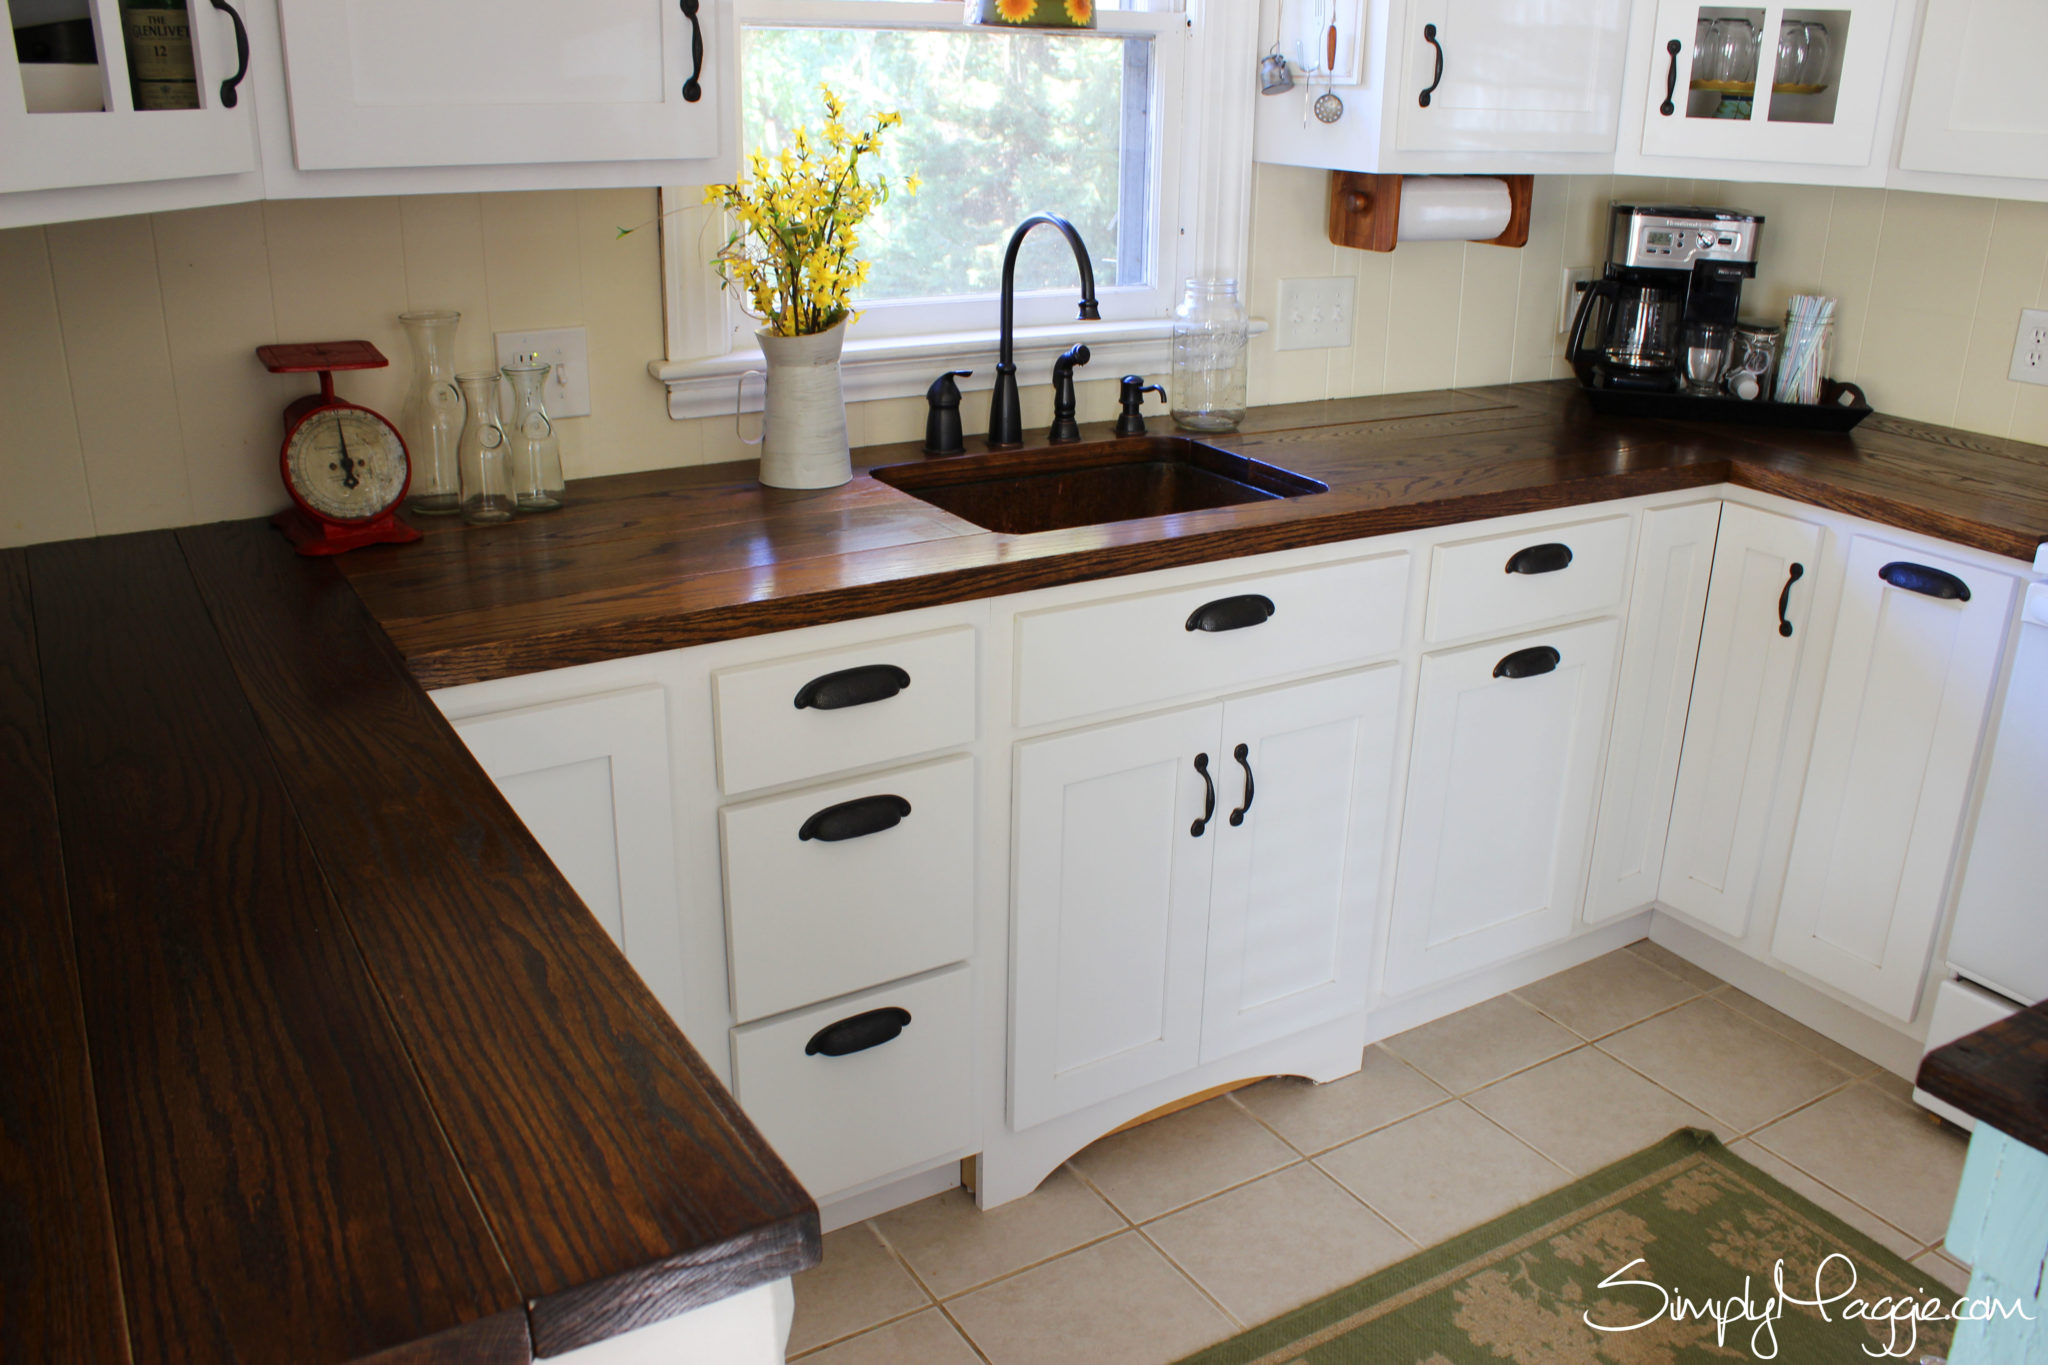 Charming and classy wooden kitchen countertops for Dark wood cabinets small kitchen